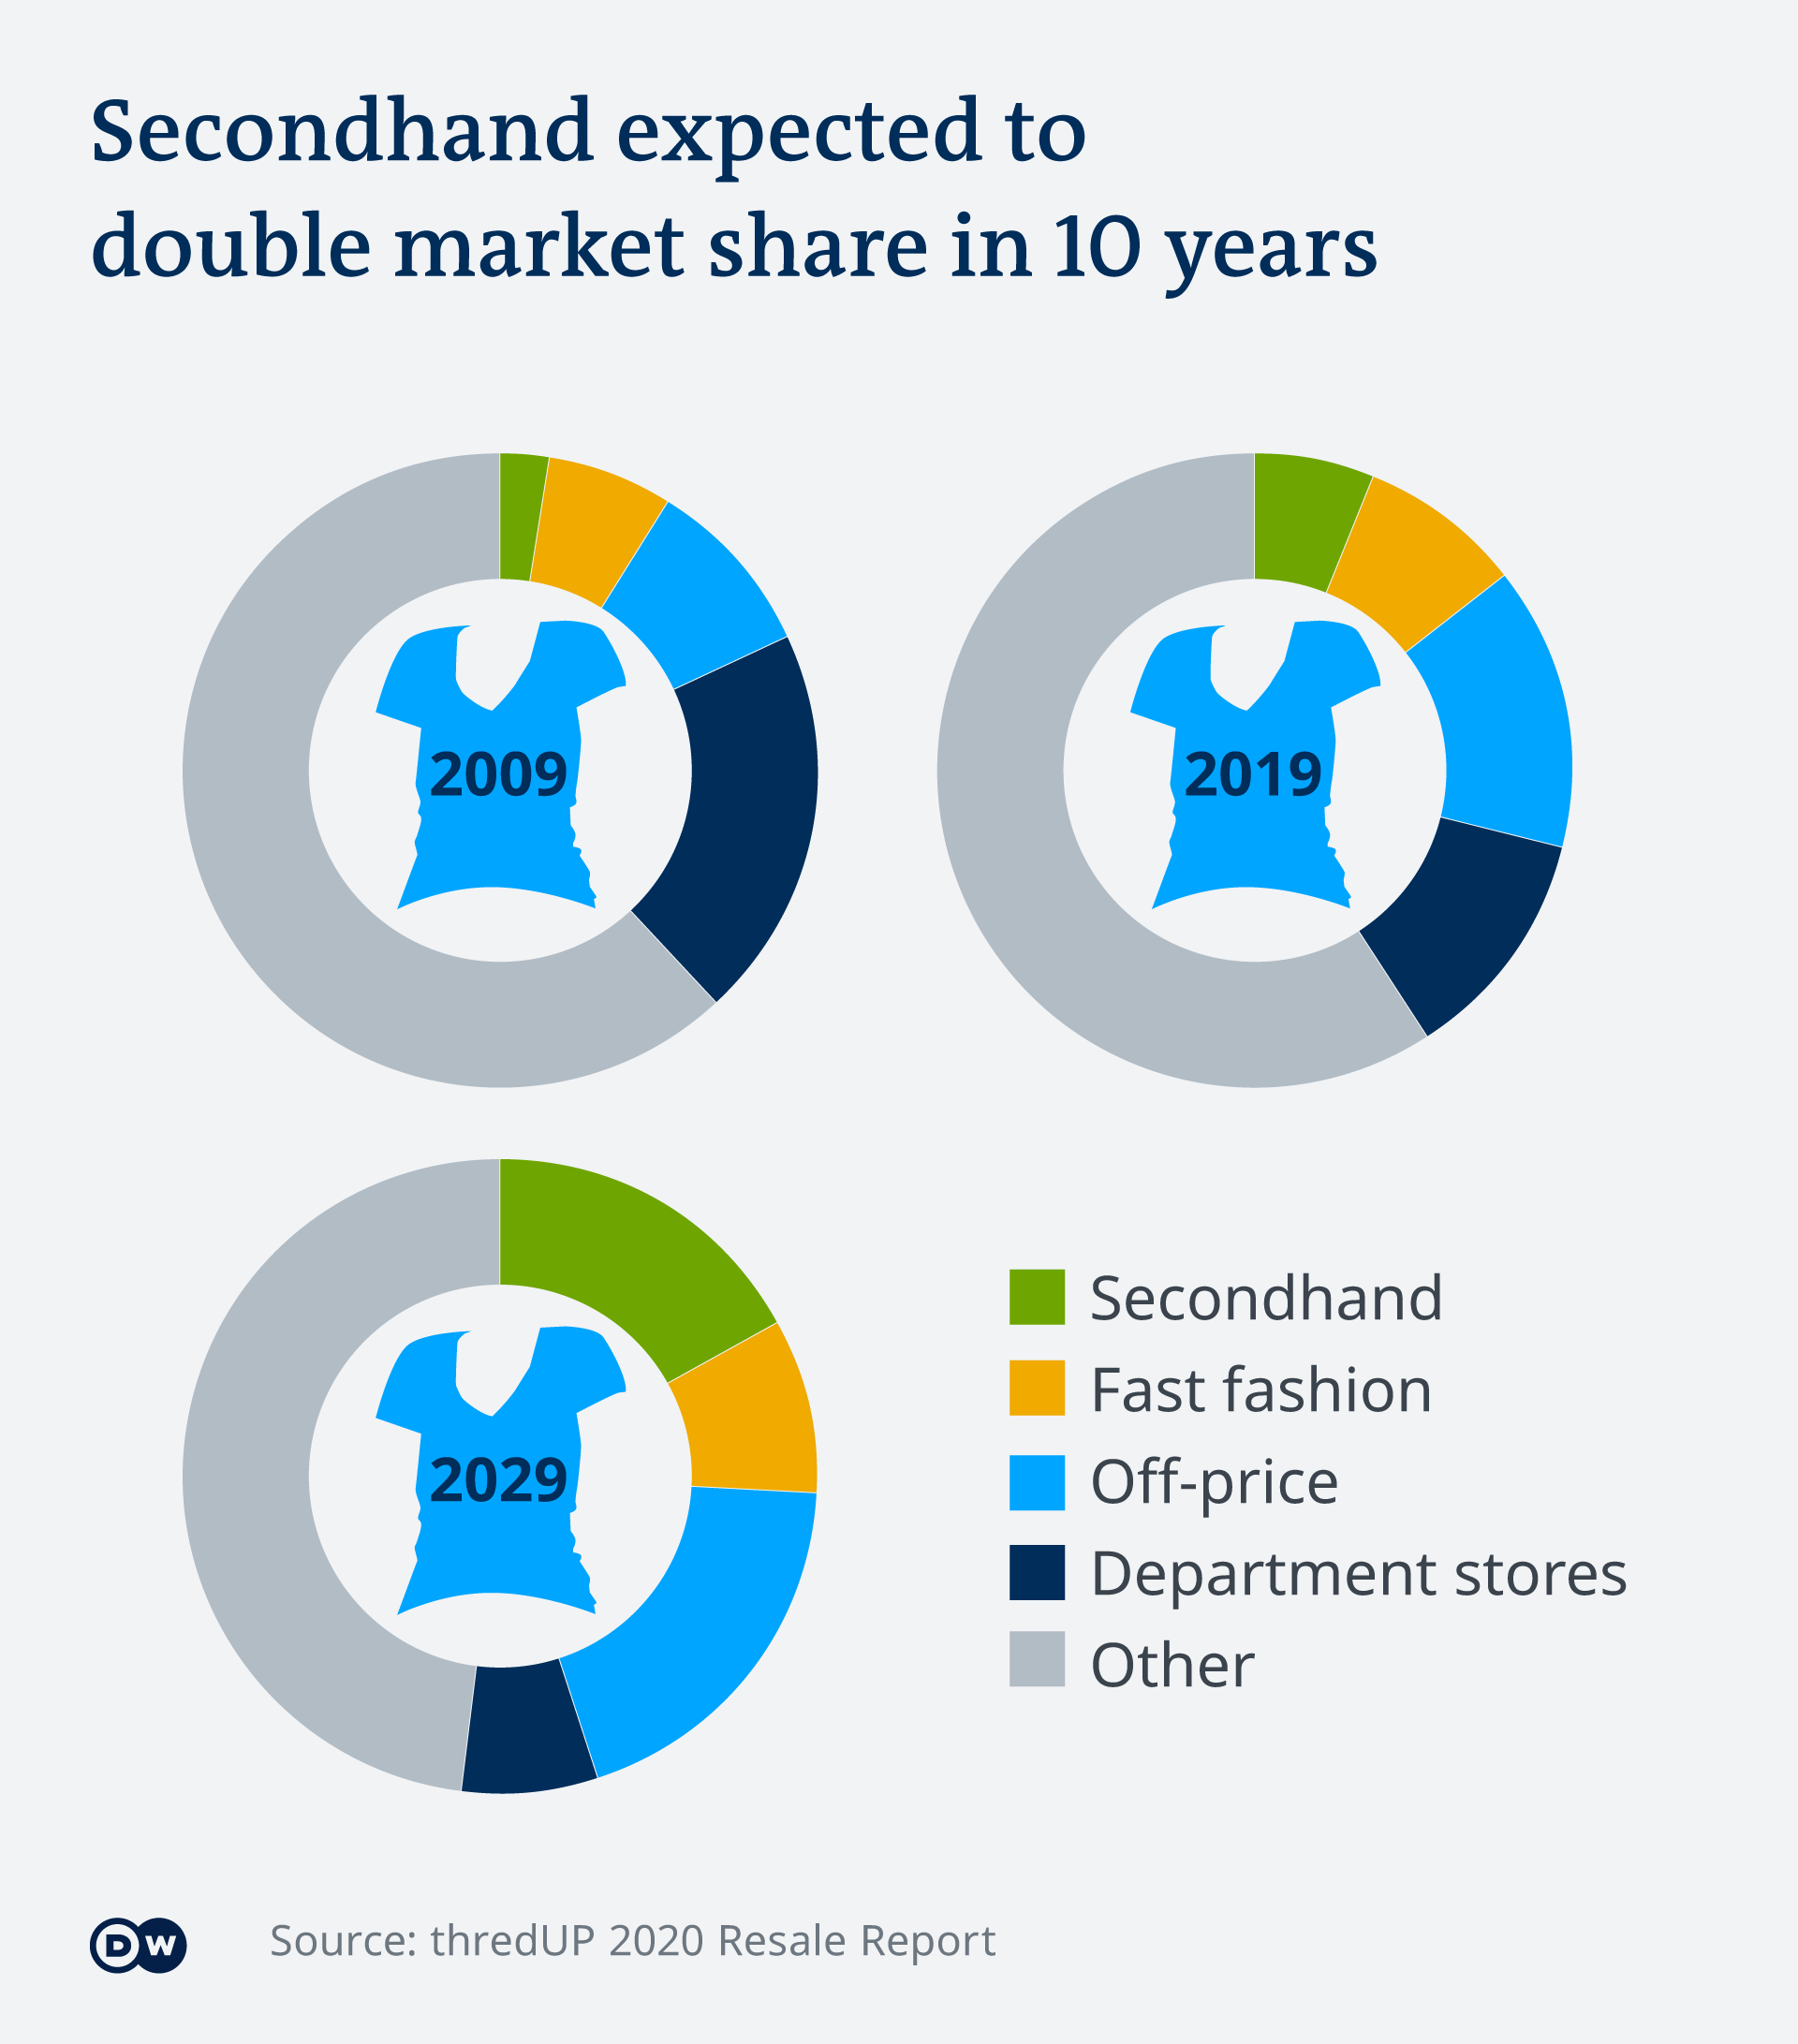 The infographic shows the growing share of the used goods market